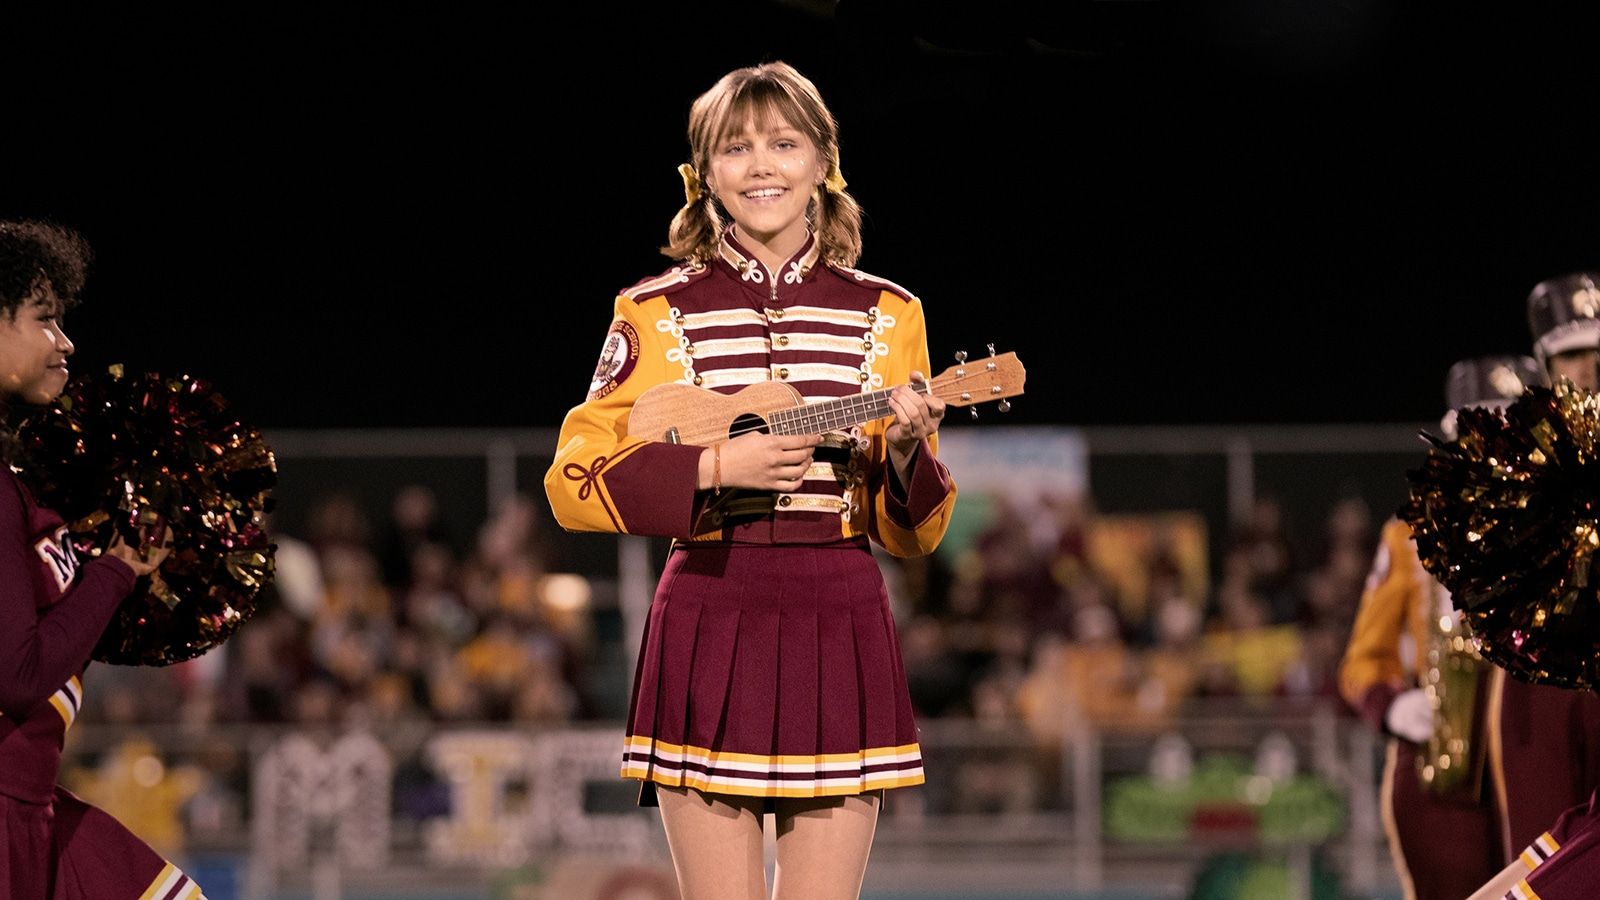 Actor Grace VanderWaal plays the ukulele as Stargirl